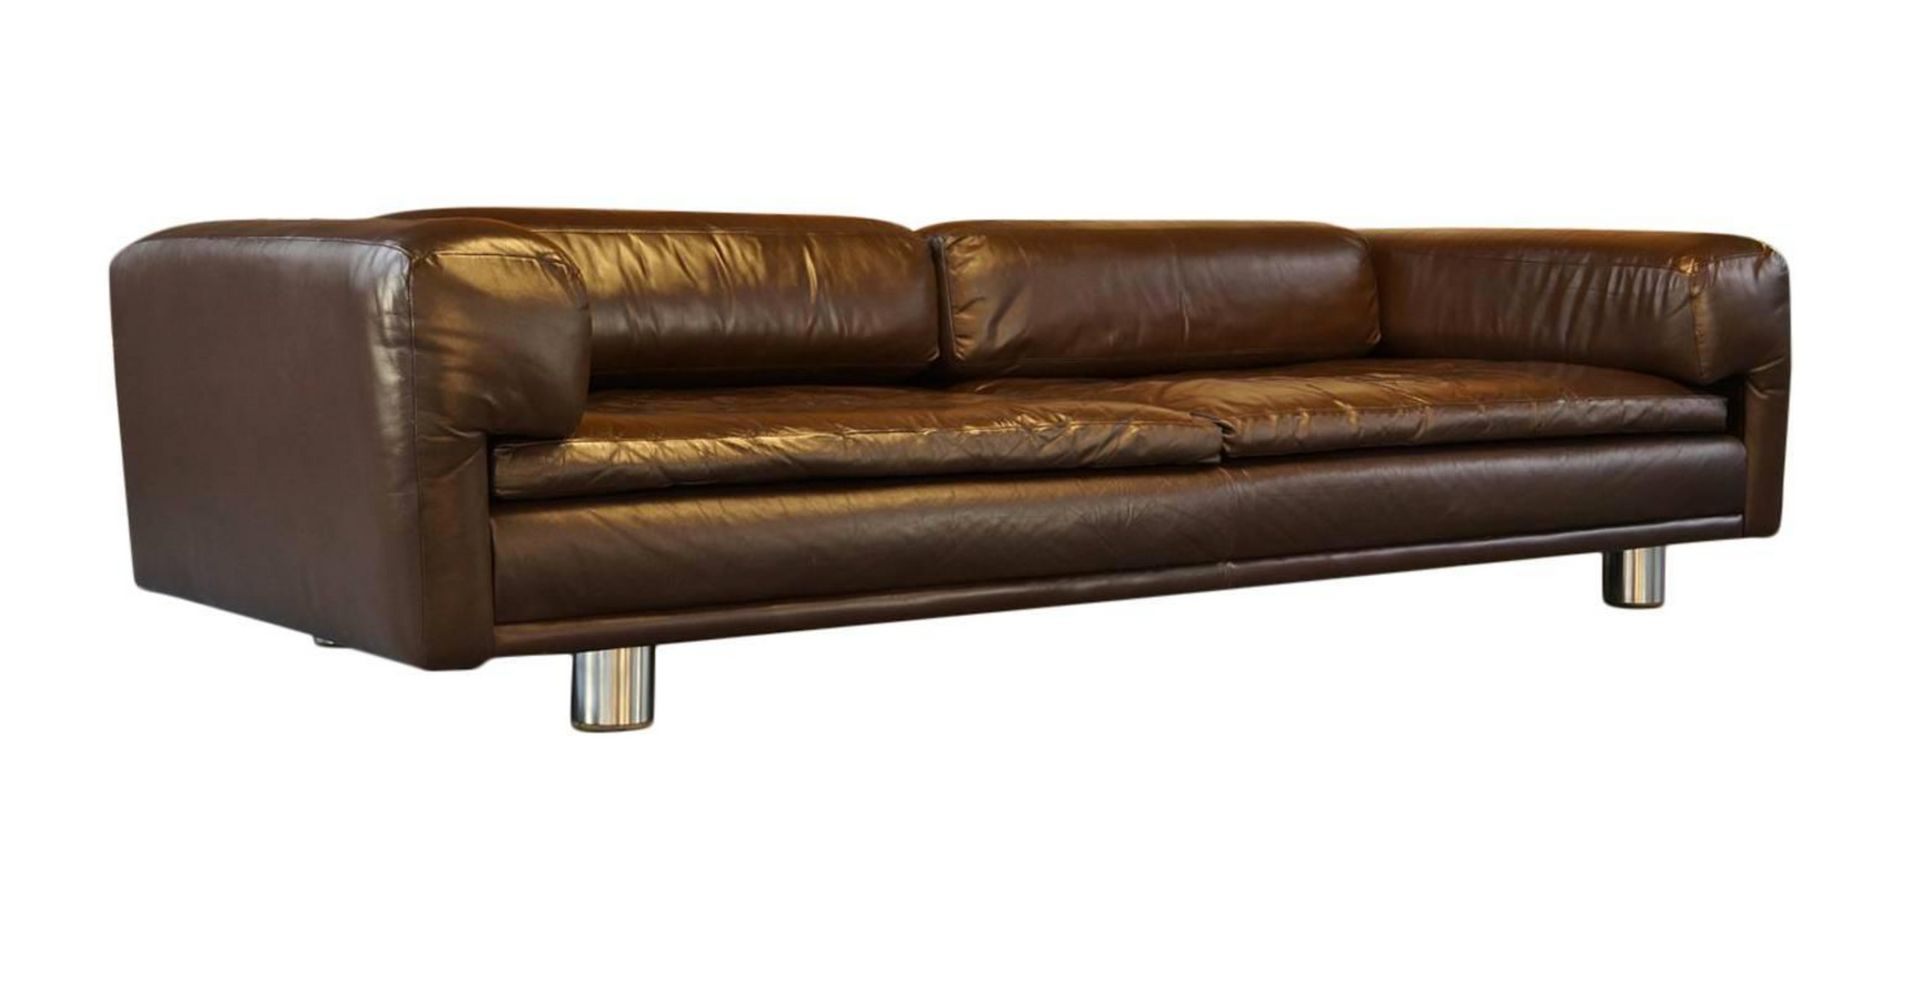 HK Diplomat Large Brown Leather Sofa from Howard Keith  : hk diplomat large brown leather sofa from howard keith 1970s 1 from www.pamono.com.au size 1920 x 988 png 1088kB